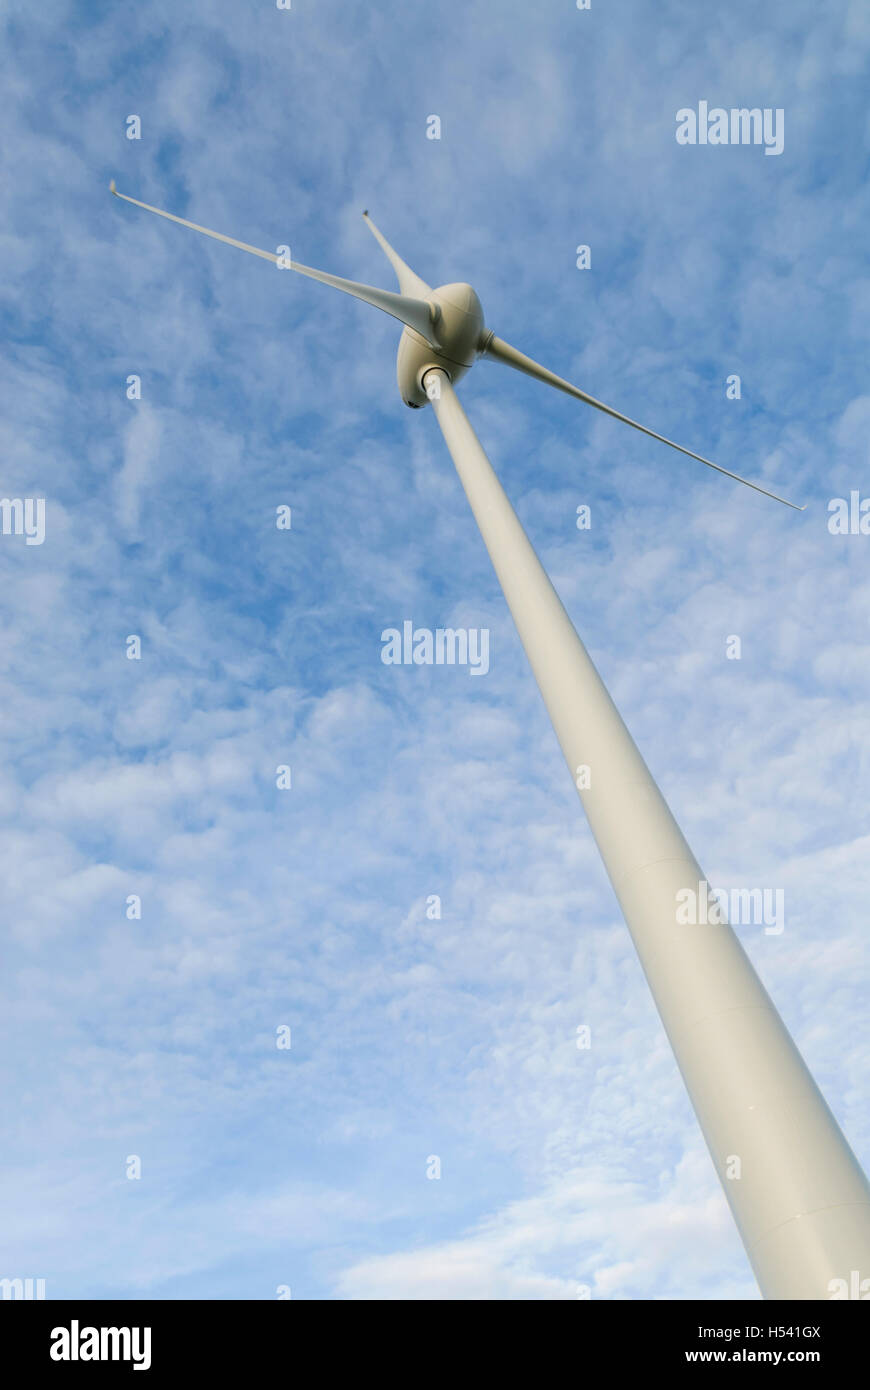 Liniclate wind turbine, Benbecula, Outer Hebrides (Western Isles), Scotland. - Stock Image